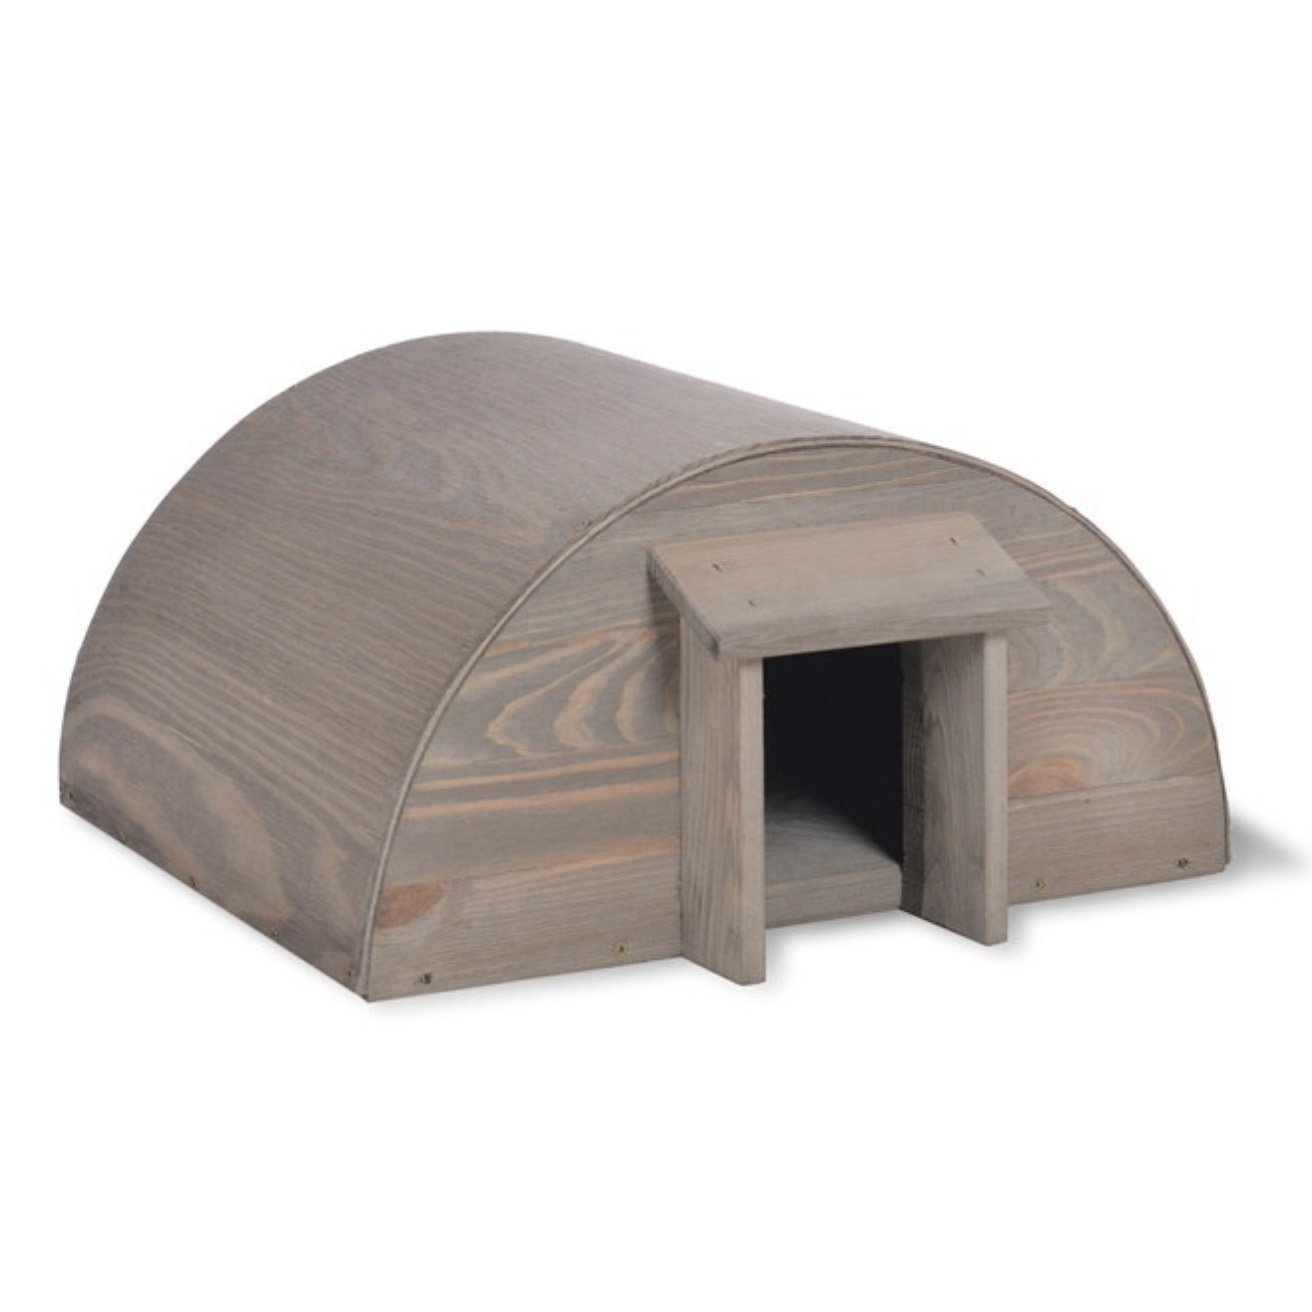 CKB LTD Hedgehog House Outdoor Garden Outside Habitat House - Wooden - Can Also Be Used For Hibernation Home